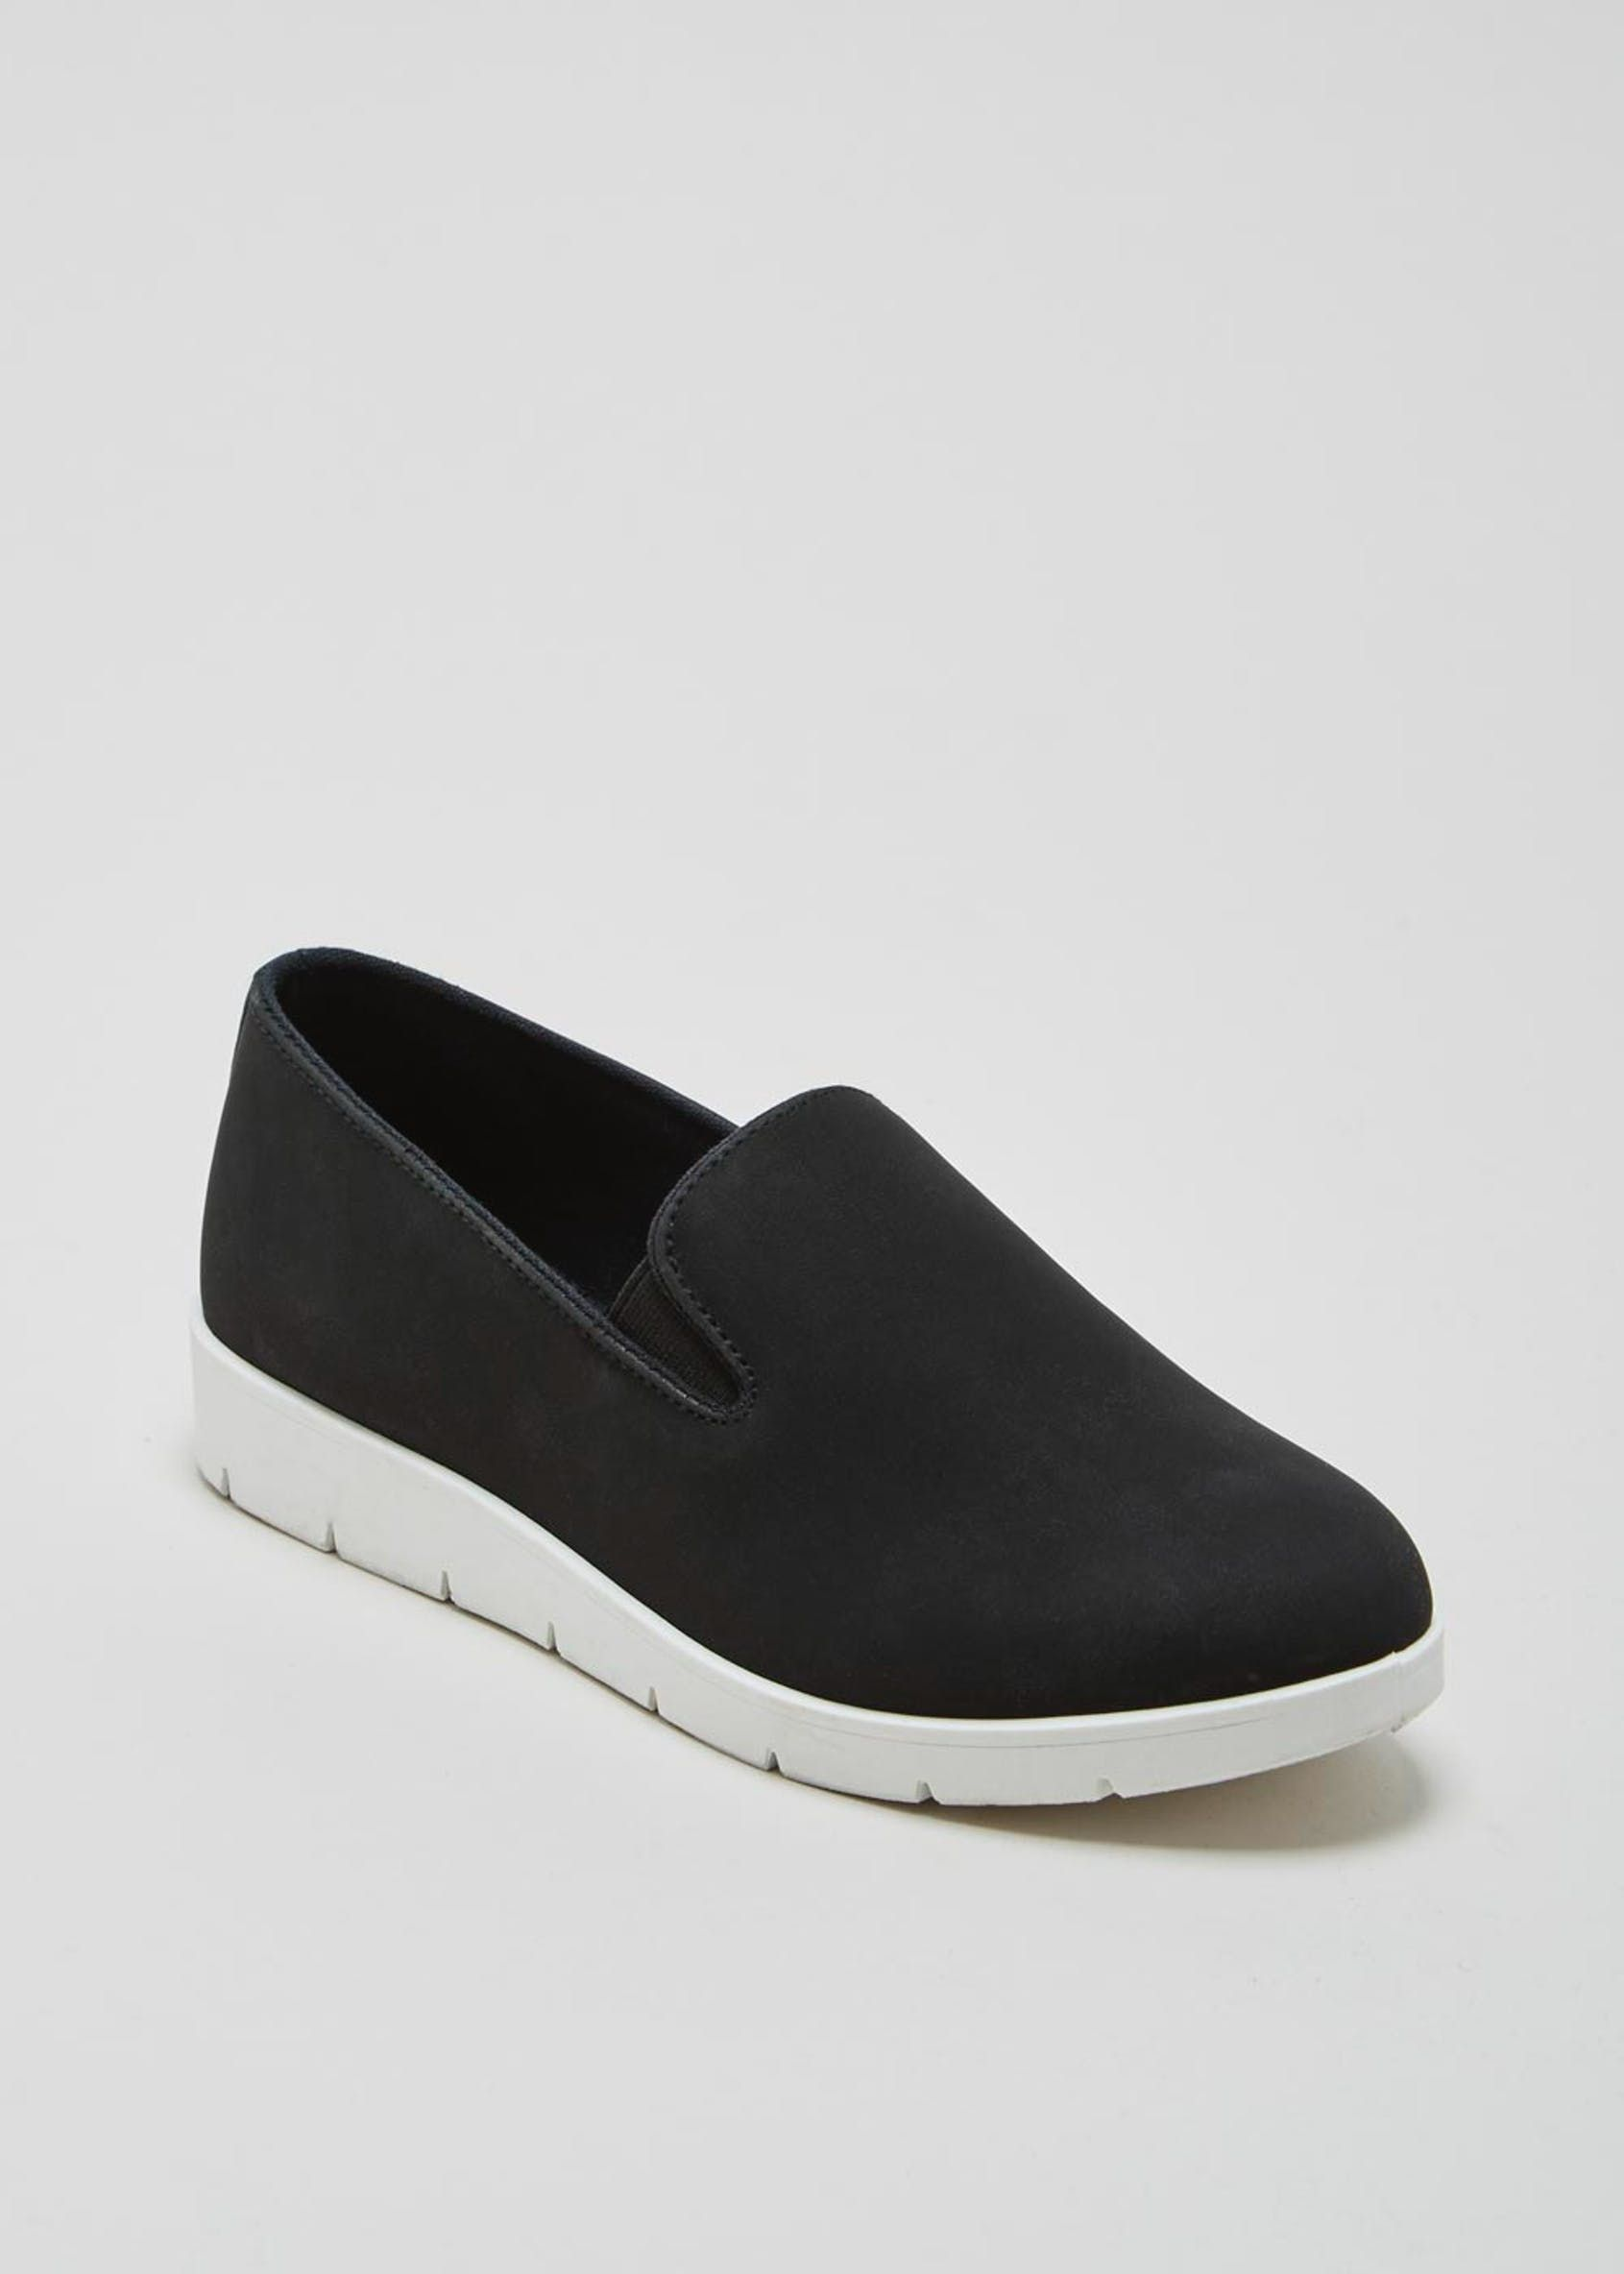 a39a81c75403 Contrast Sole Slip On Pumps